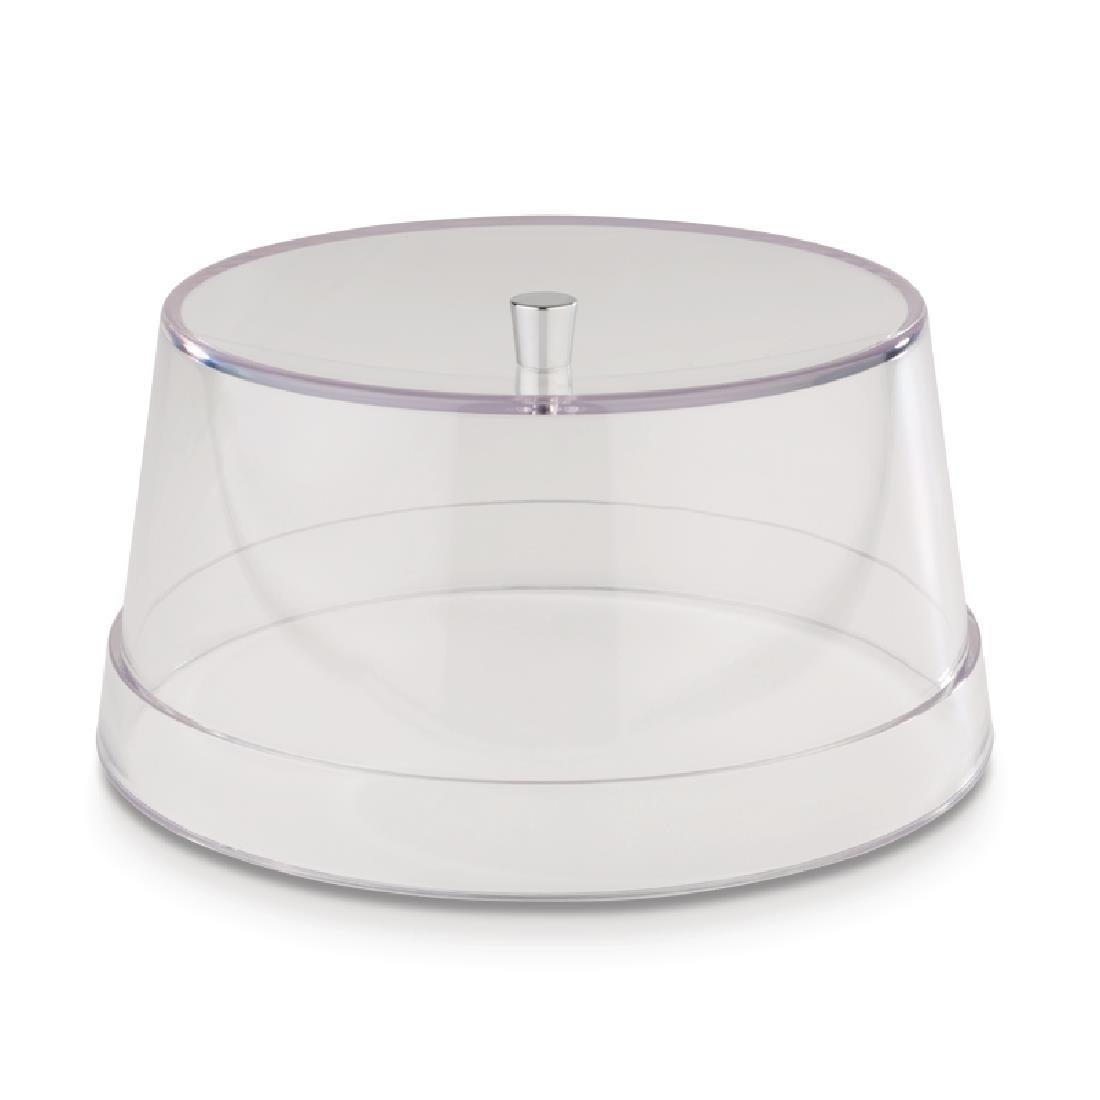 APS+ Bakery Tray Cover Clear 235mm - Each - DE551